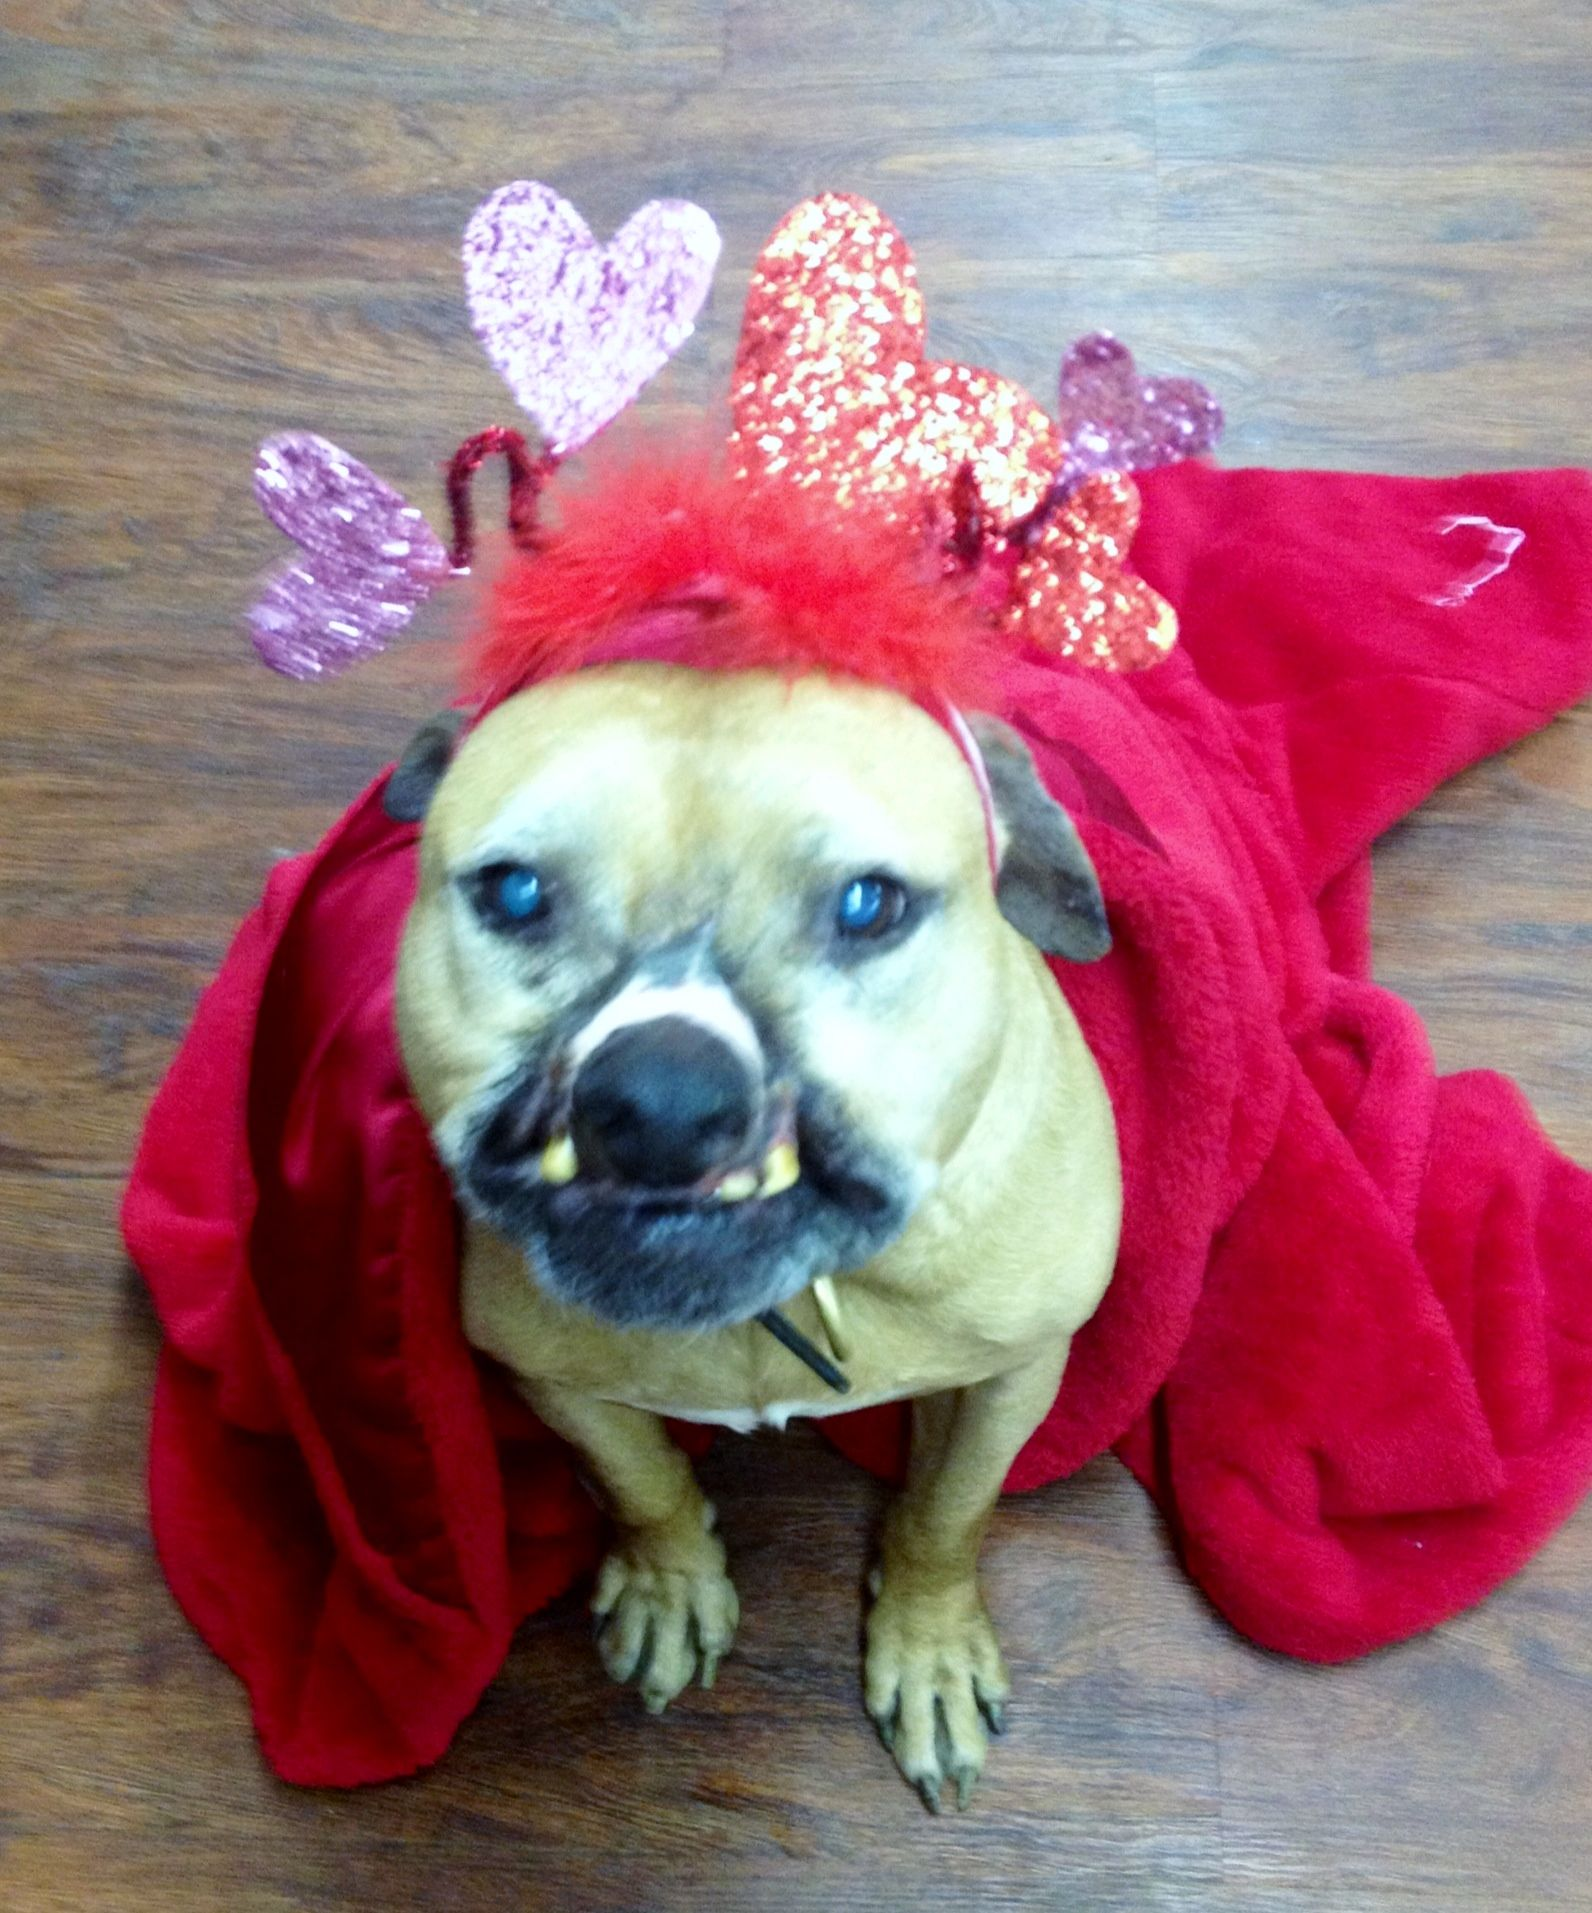 Pit Bulls In Flower Crowns Pitbull Terrier Pitbulls Dog Adoption